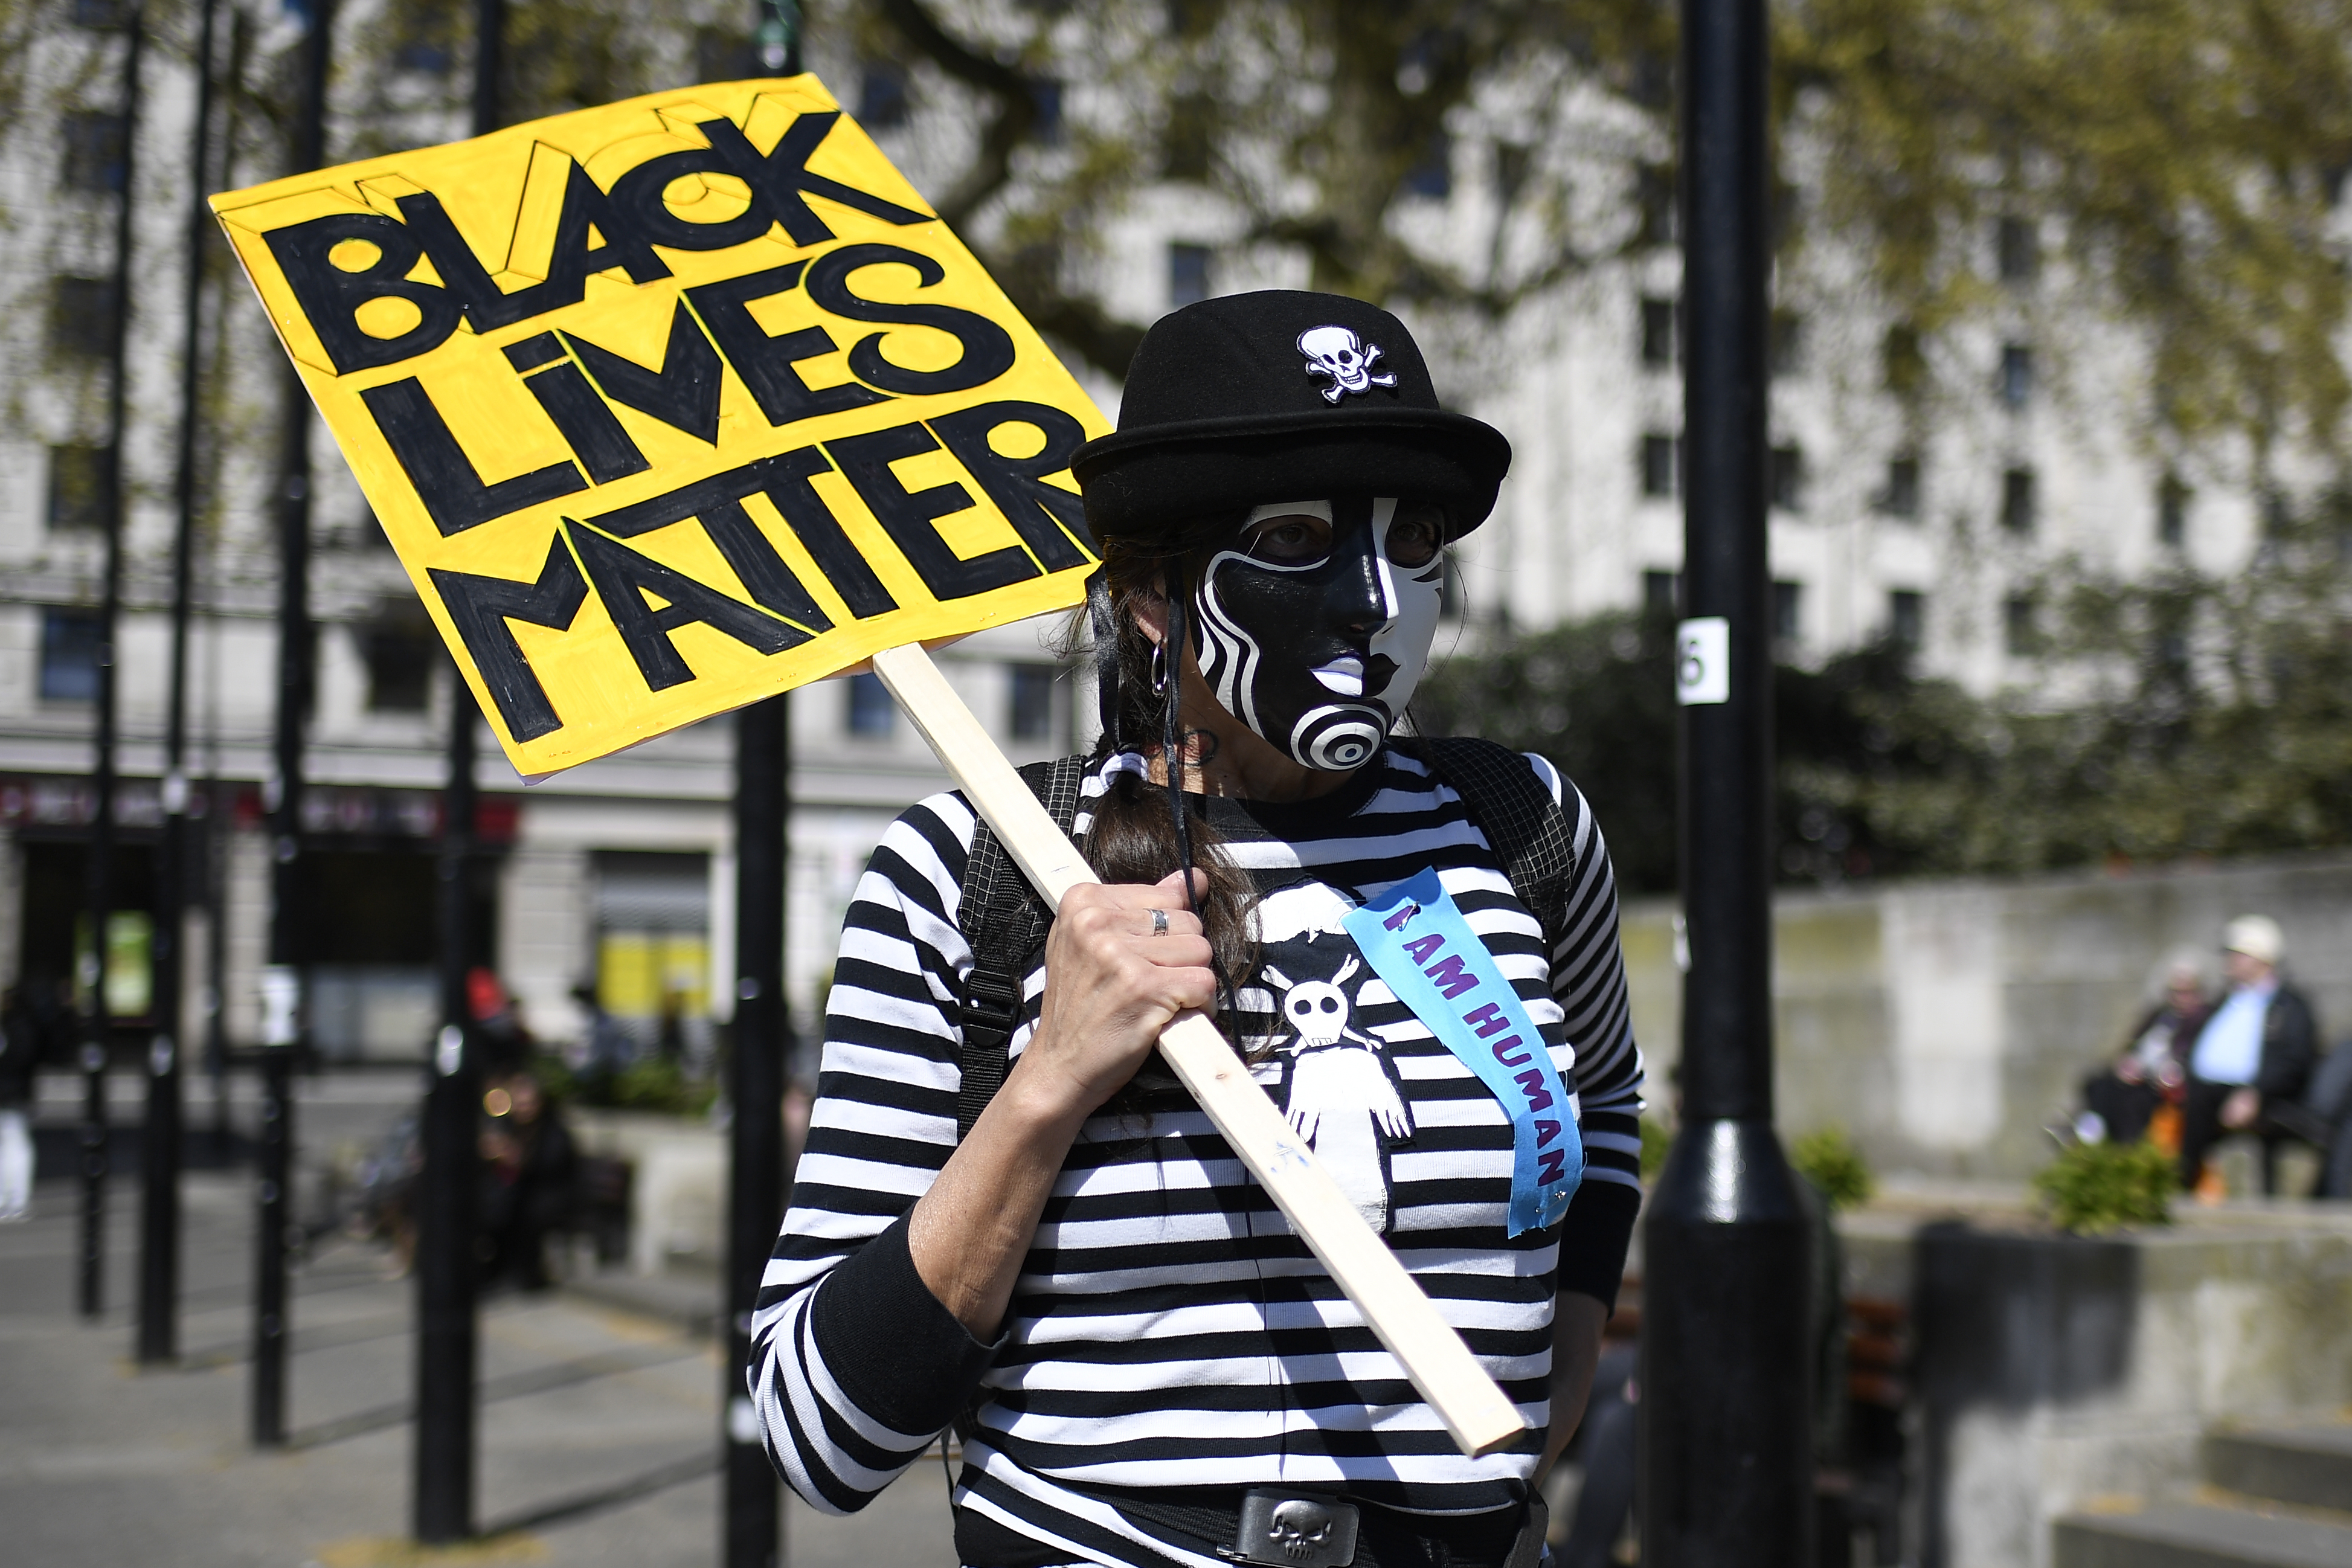 <p>A protester holds a banner during for 'Kill the Bill' protest in London, Sunday, April 25, 2021. The demonstration is against the contentious Police, Crime, Sentencing and Courts Bill, which is currently going through Parliament and would give police stronger powers to restrict protests. Some 'Black Lives Matter' protesters joined the rally. (AP Photo/Alberto Pezzali)</p>